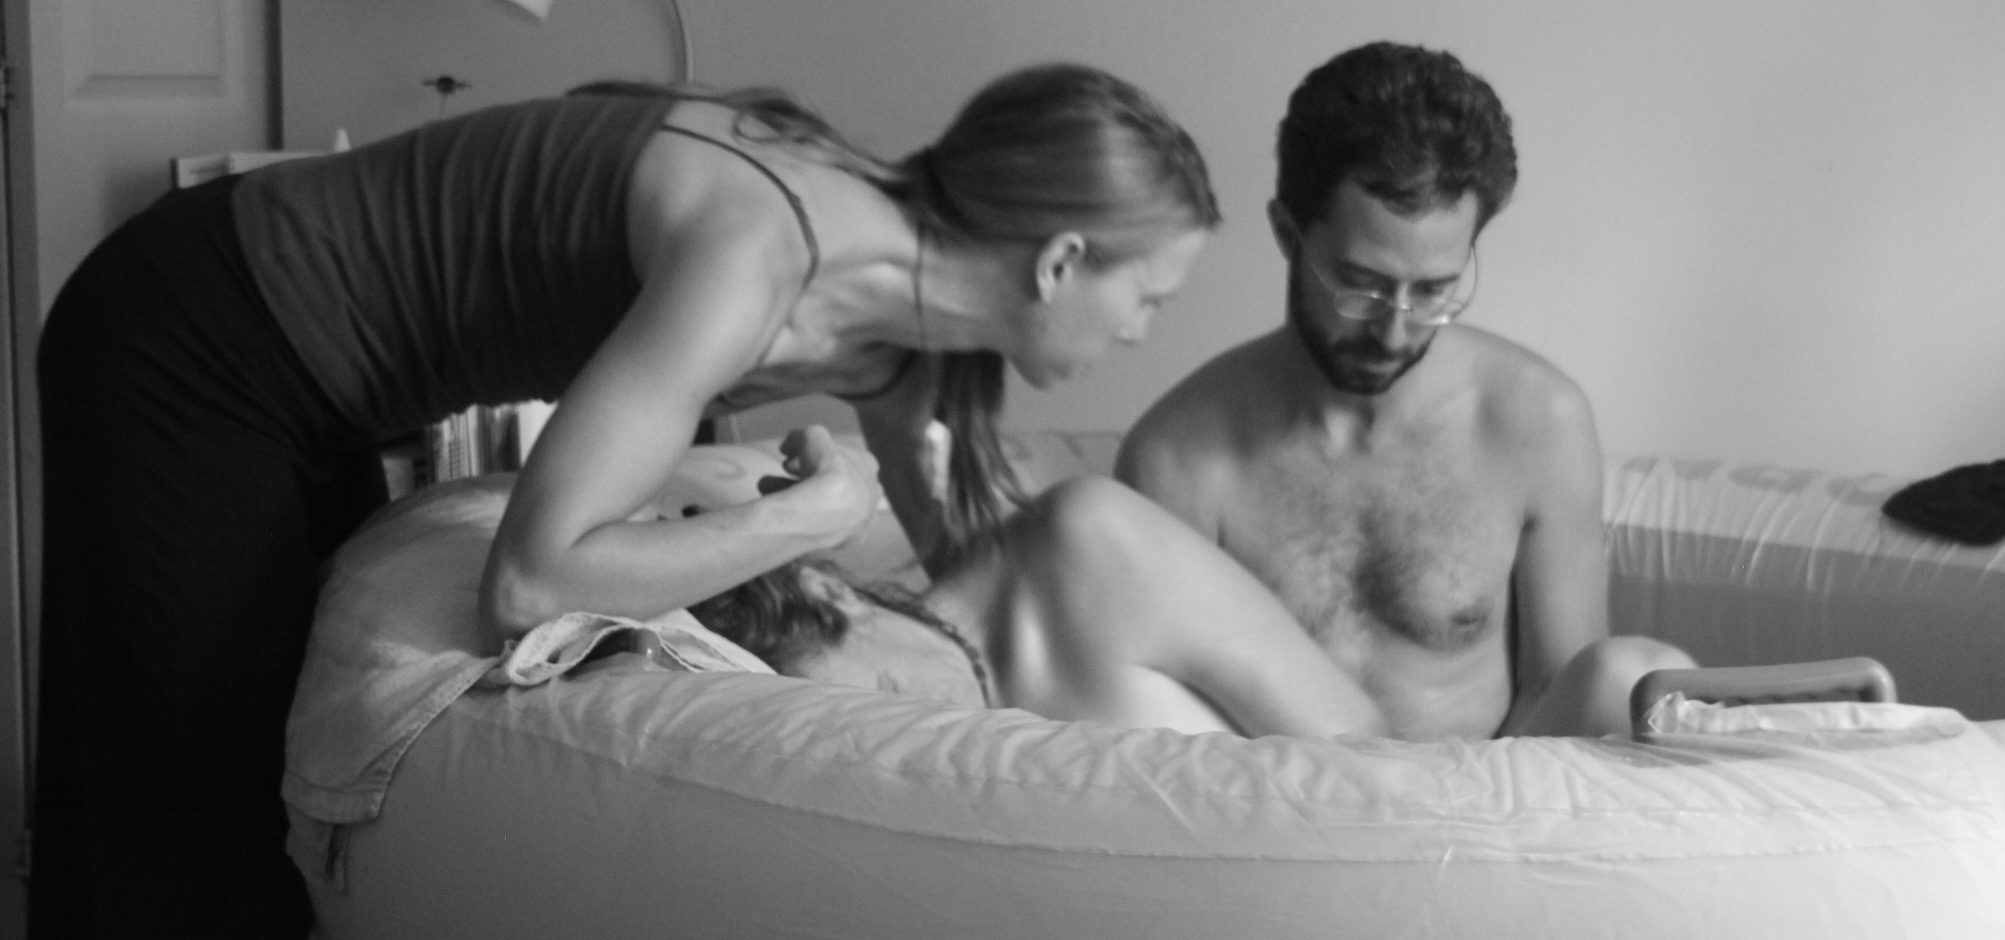 Applying pressure to her lower back while she labors in the birth tub with her partner